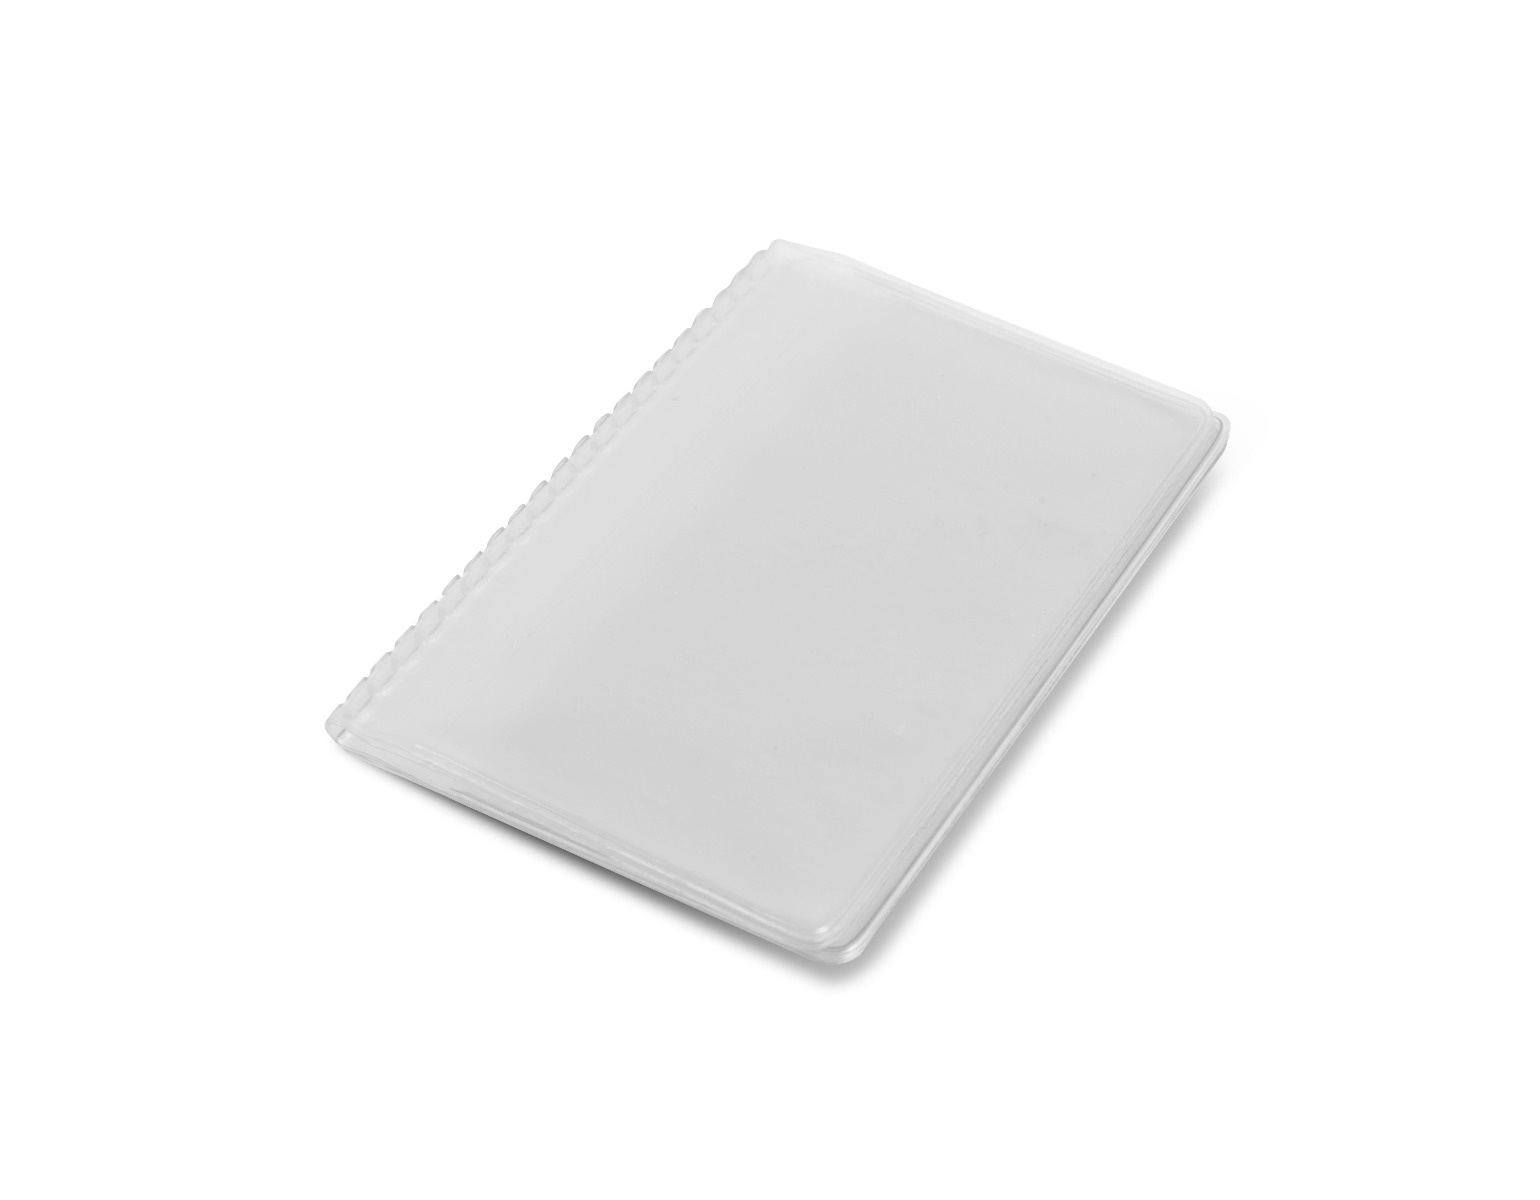 Refill for credit cards holder